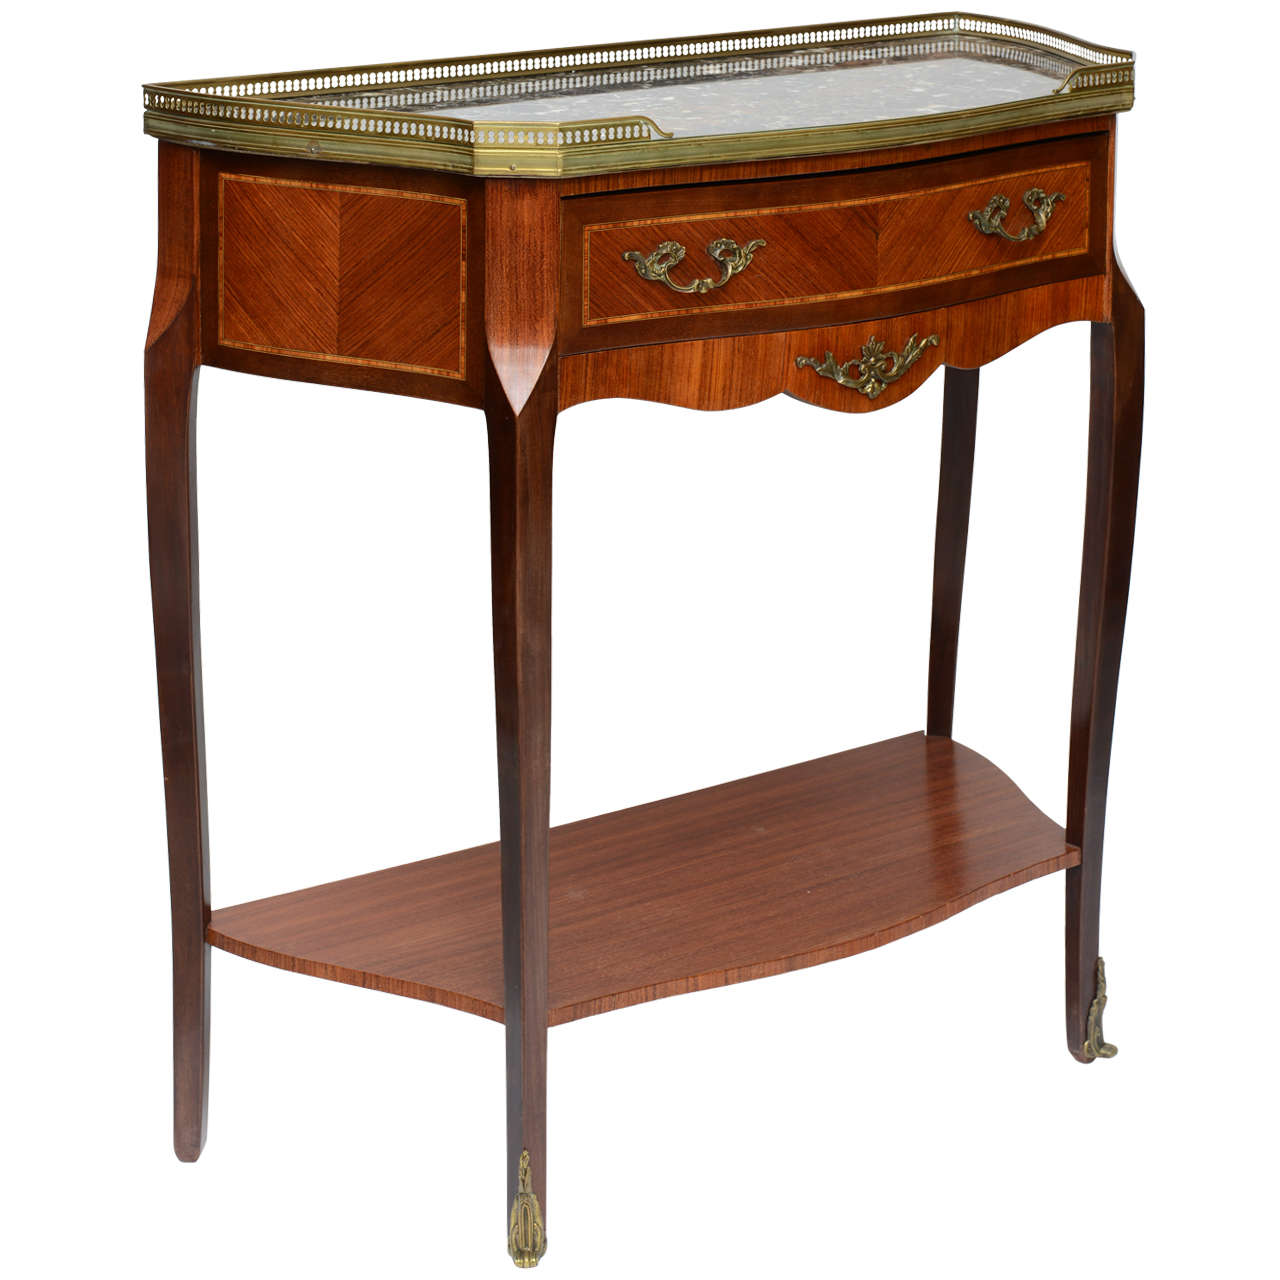 Inlaid Wood French Console With Original Marble Top And